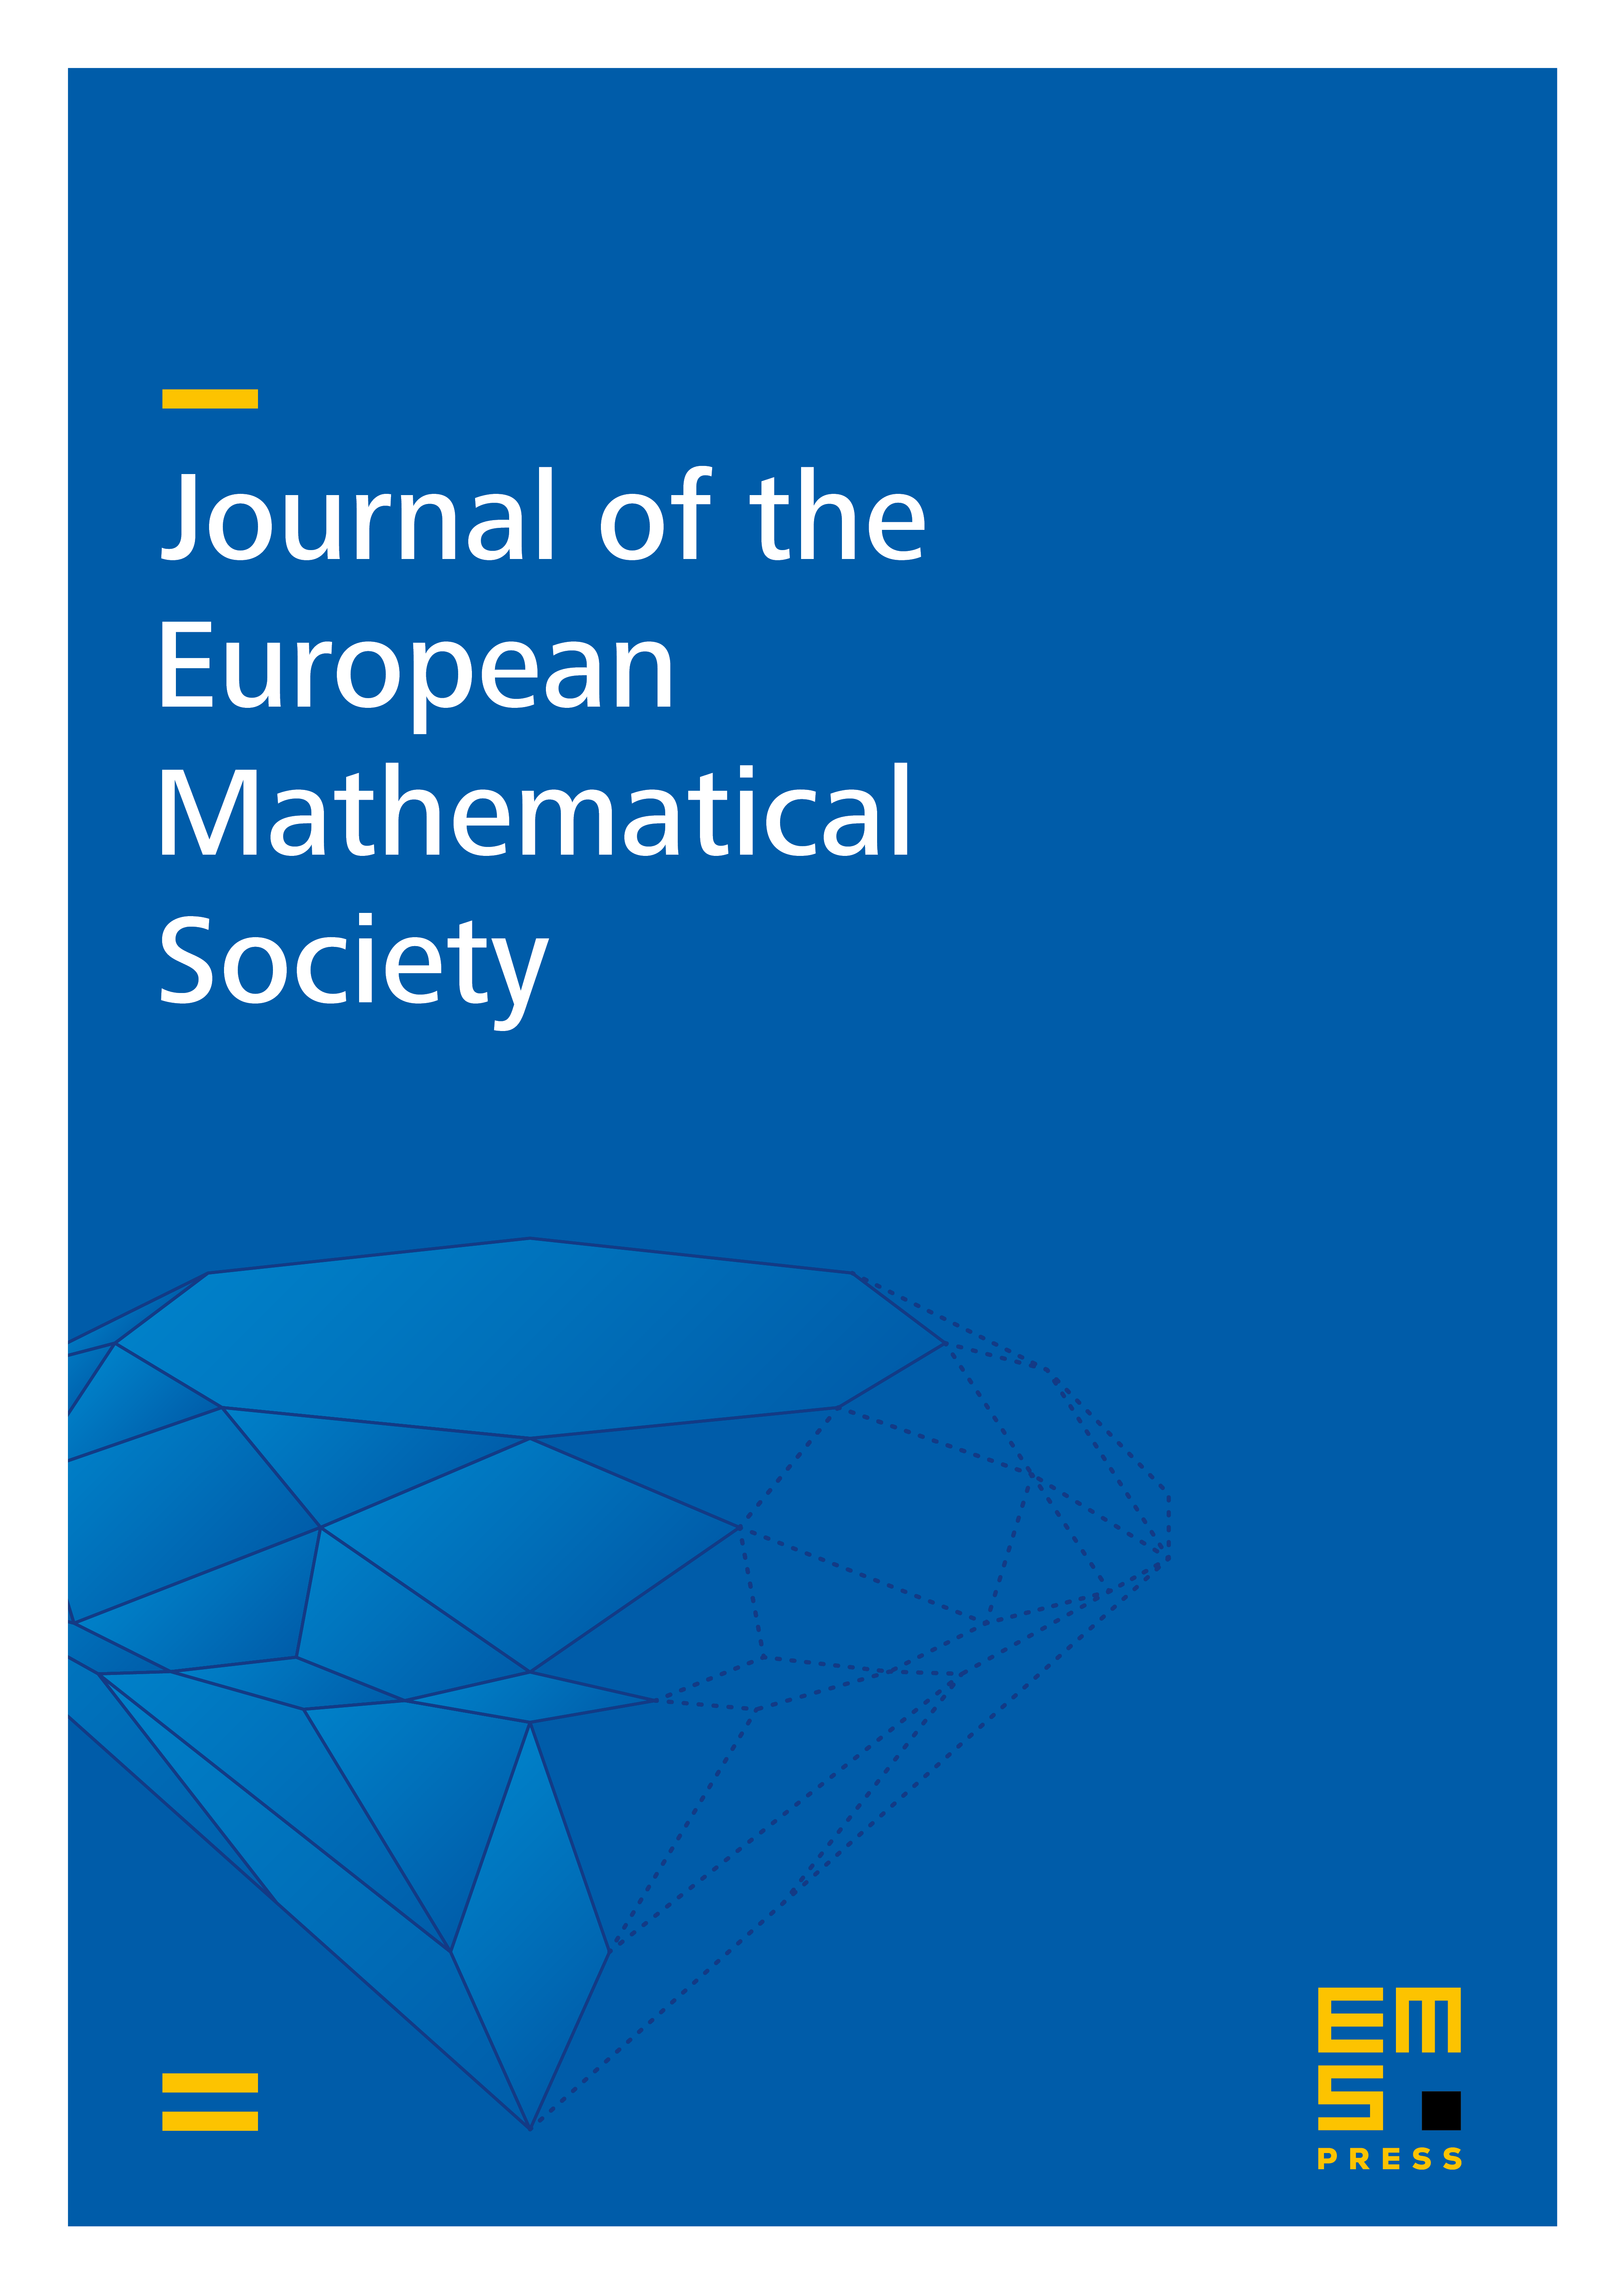 Journal of the European Mathematical Society cover